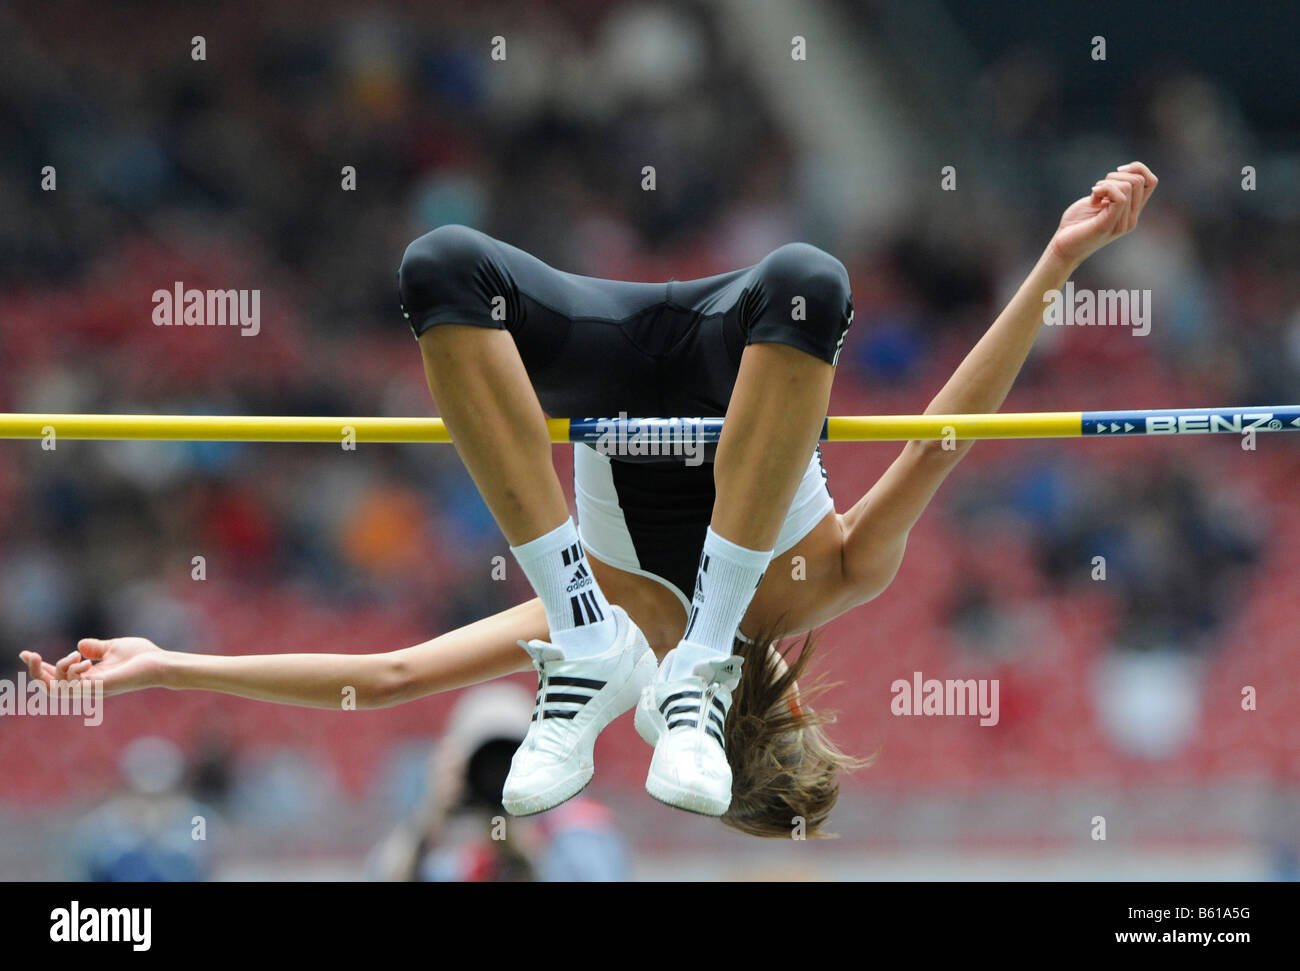 Blanka VLASIC, CRO, High Jump, first place, at the IAAF 2008 World Athletics Final for track and field in the Mercedes - Stock Image